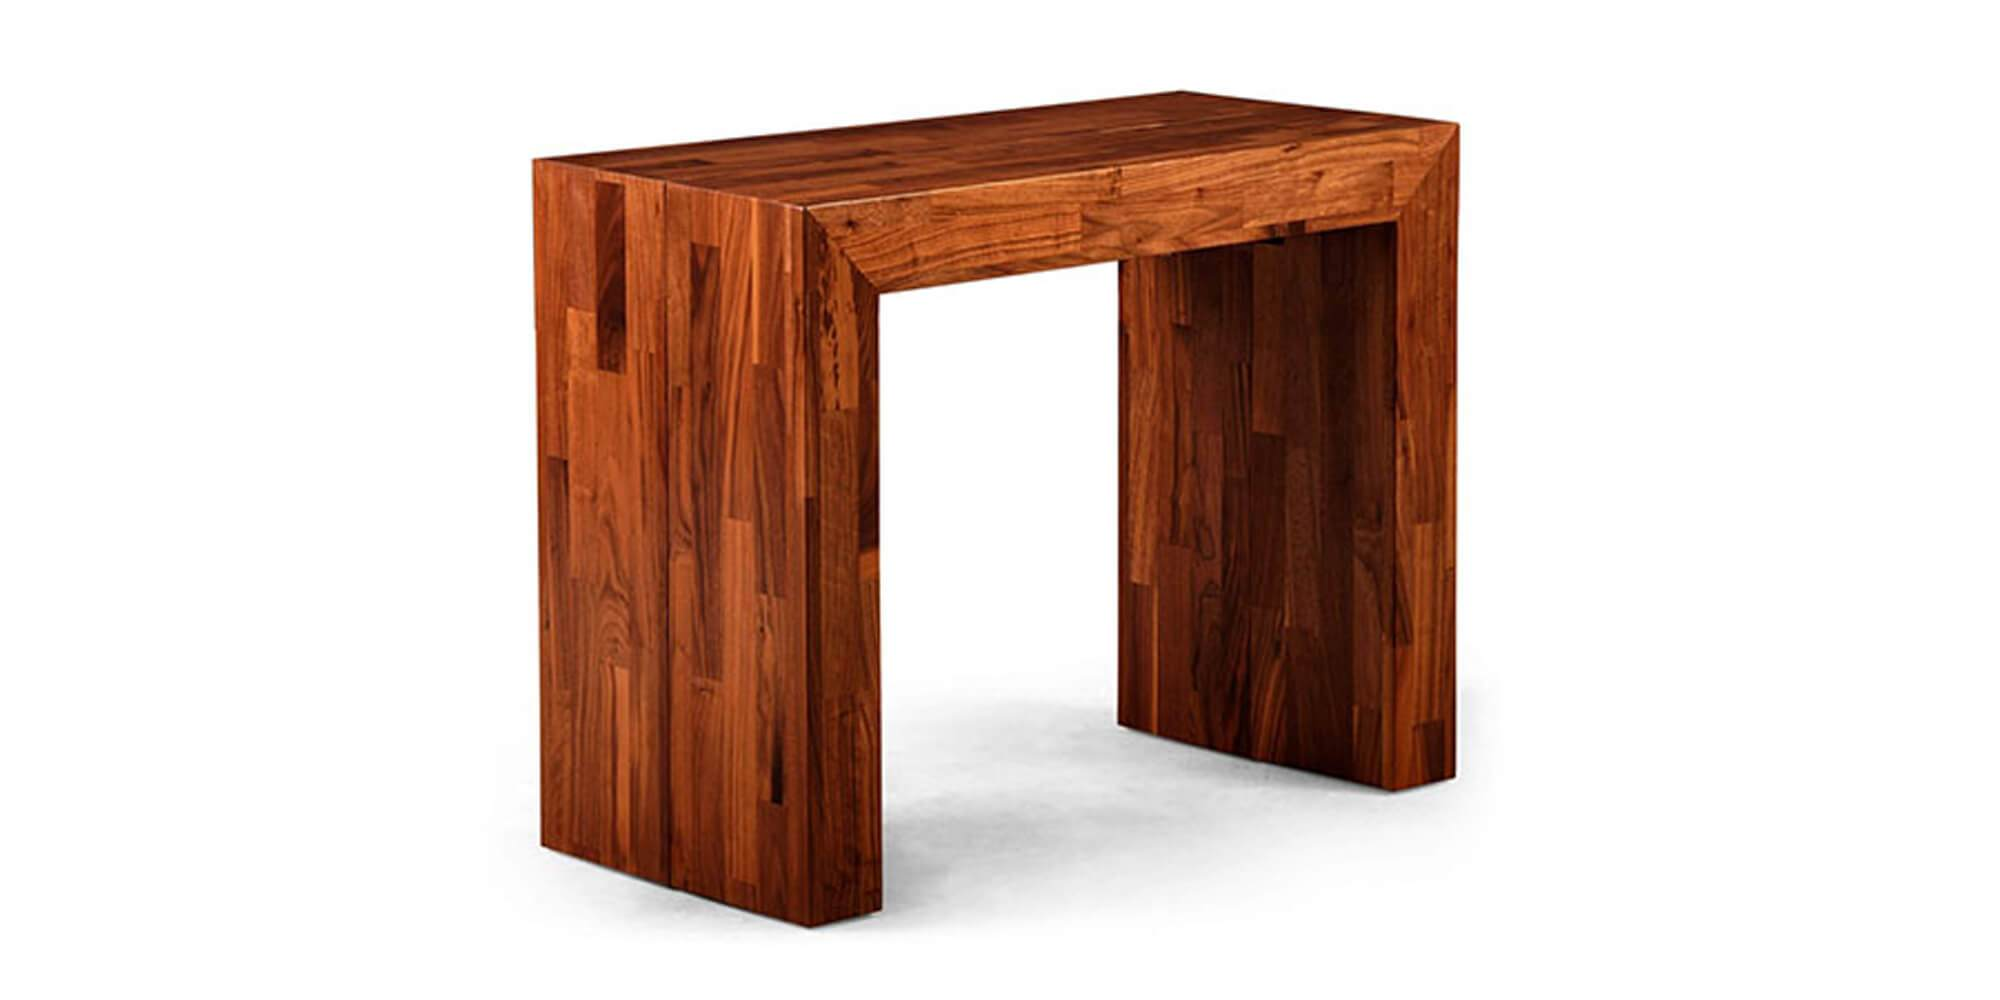 Le Transformer Table 2.0 + Châtaignier